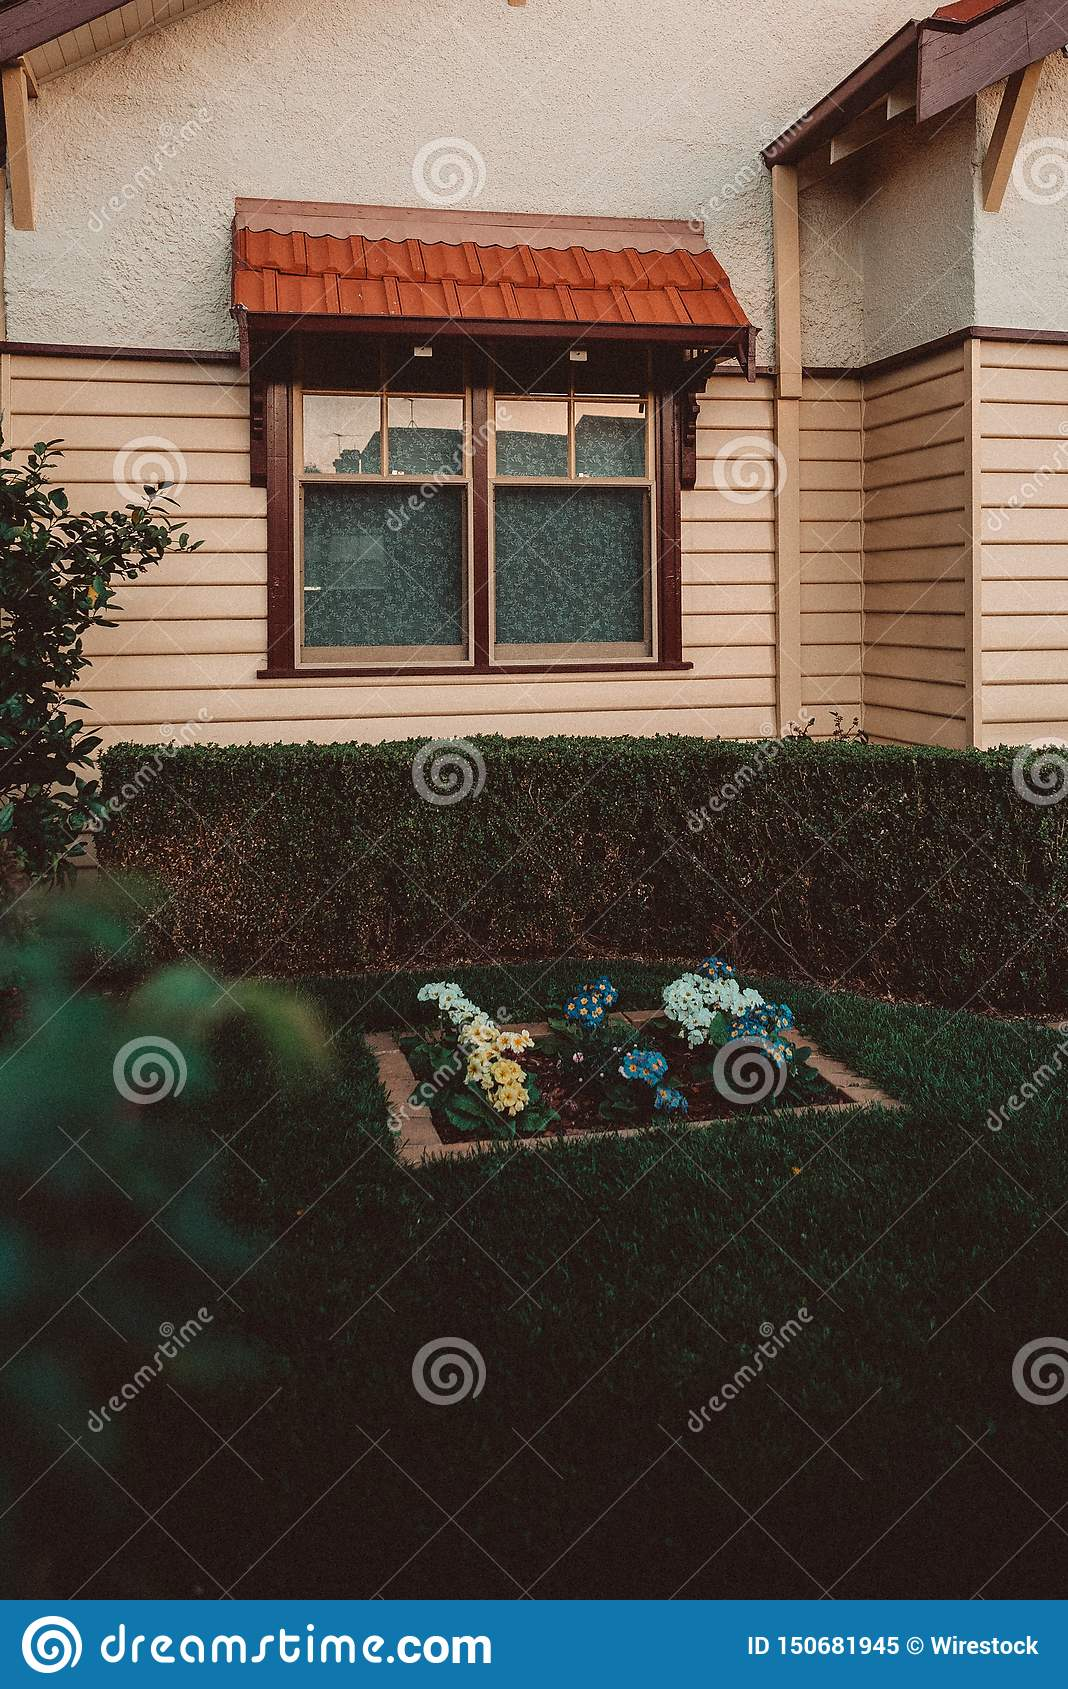 Little garden of a house with plants and flowers